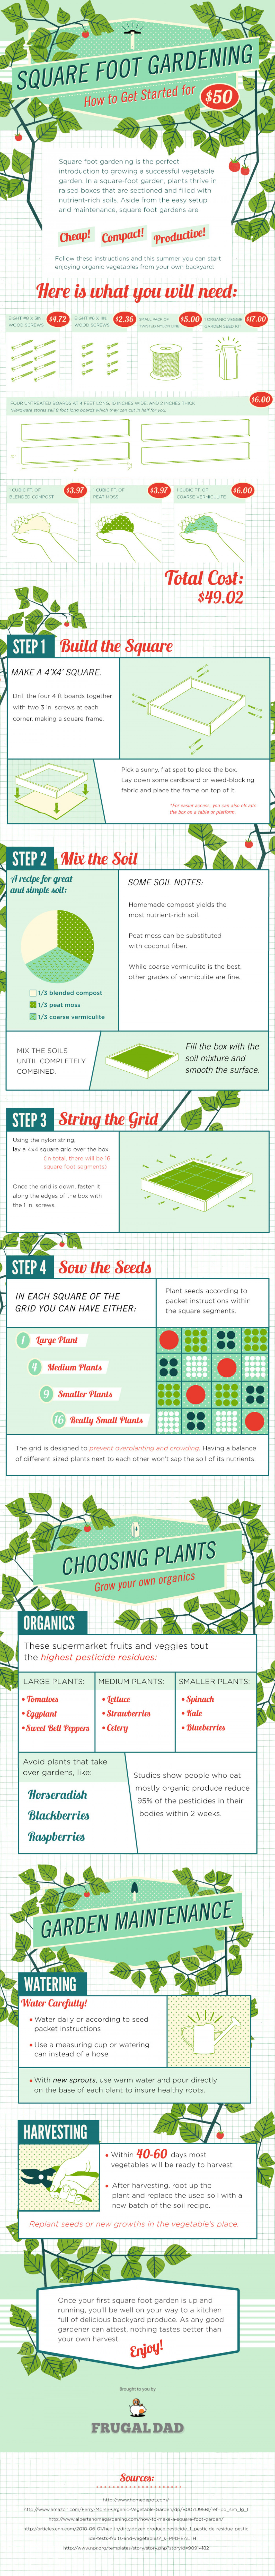 Square Foot Gardening: How to Get Started for $50 Infographic